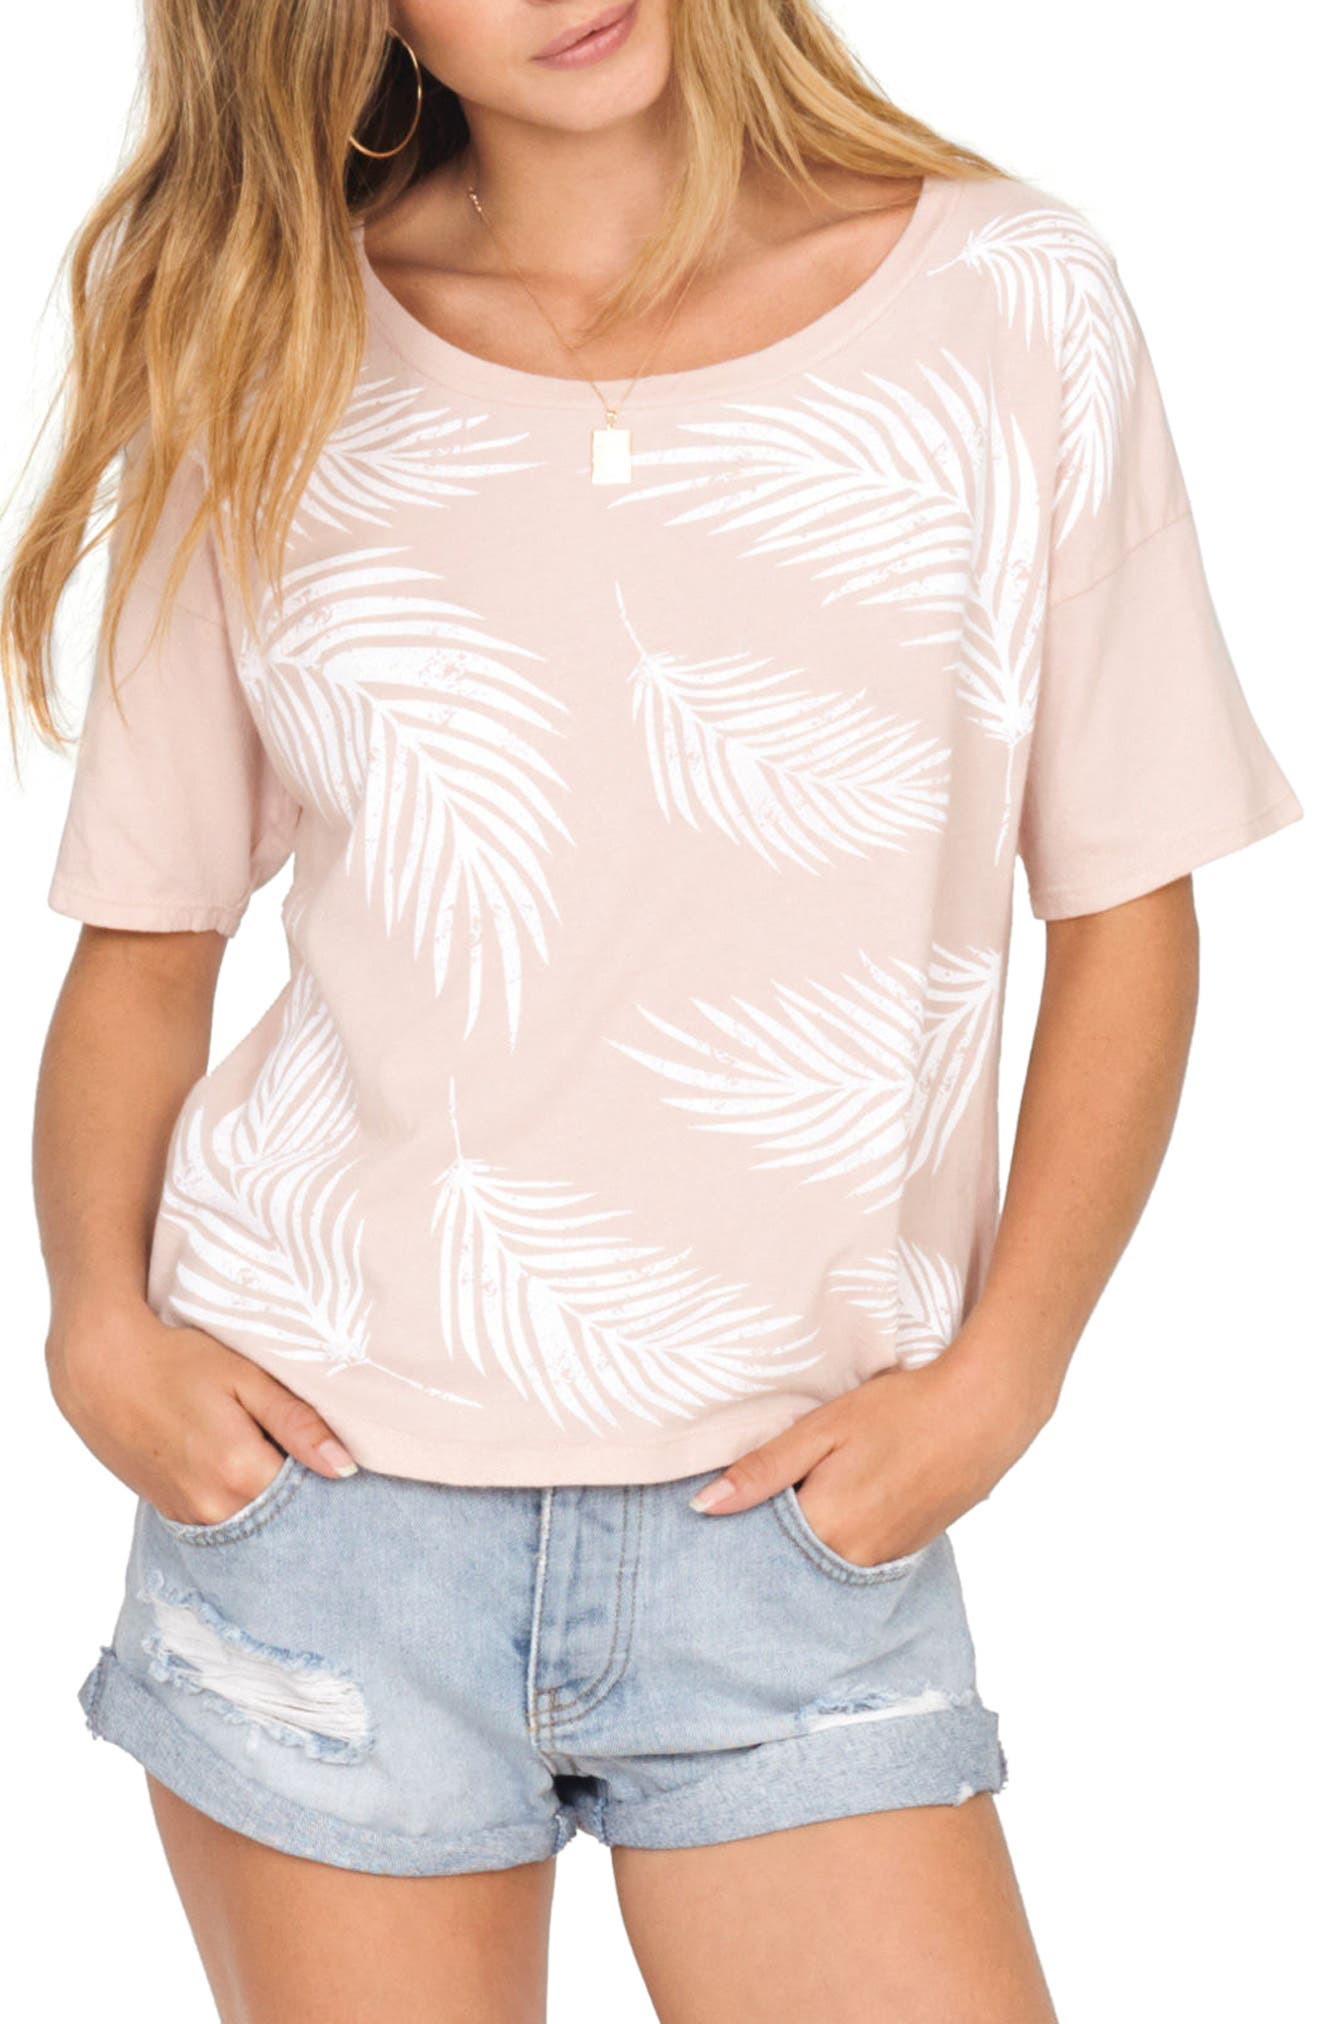 Roll with It Tee,                         Main,                         color, Rose